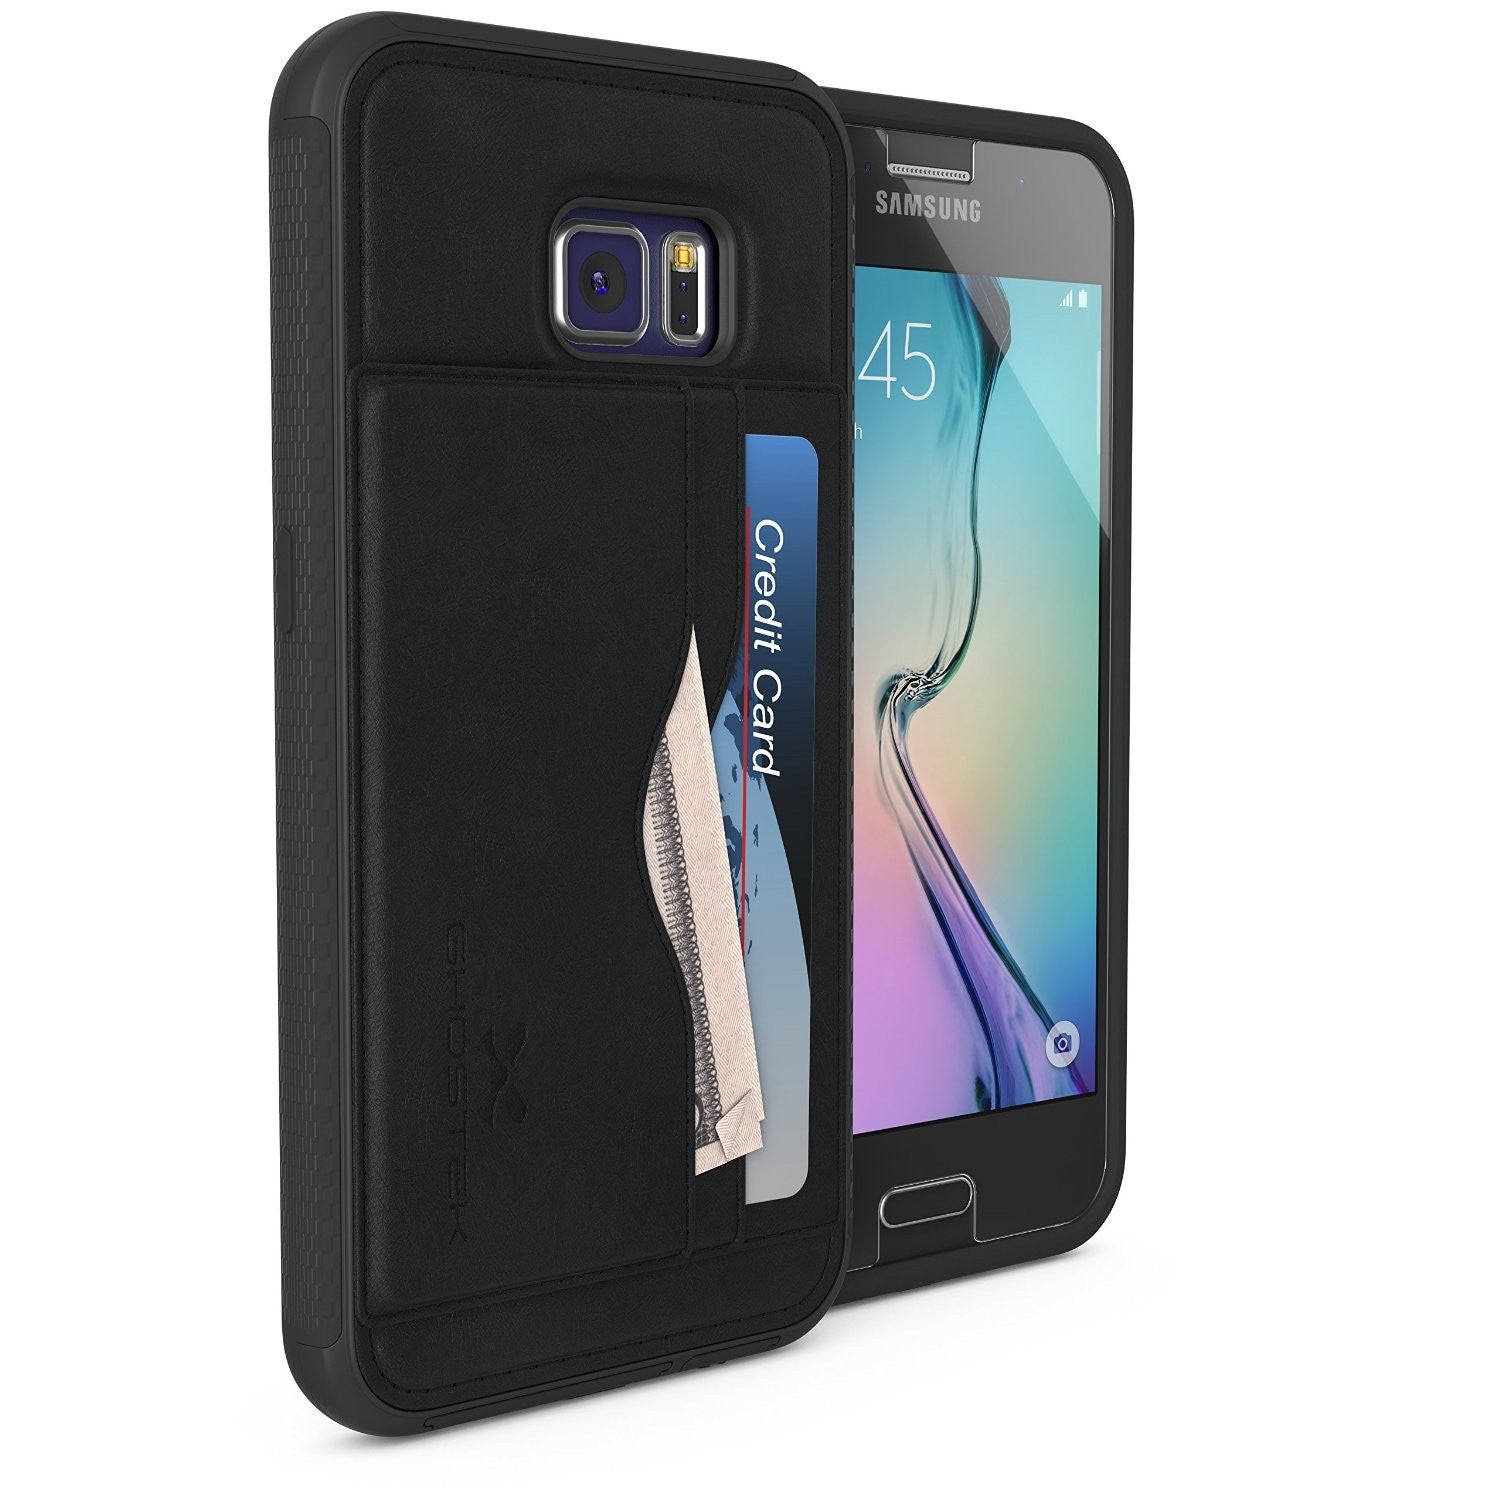 Galaxy S6 Wallet Case, Ghostek Stash Black Wallet Case w/ Tempered Glass | Lifetime Warranty